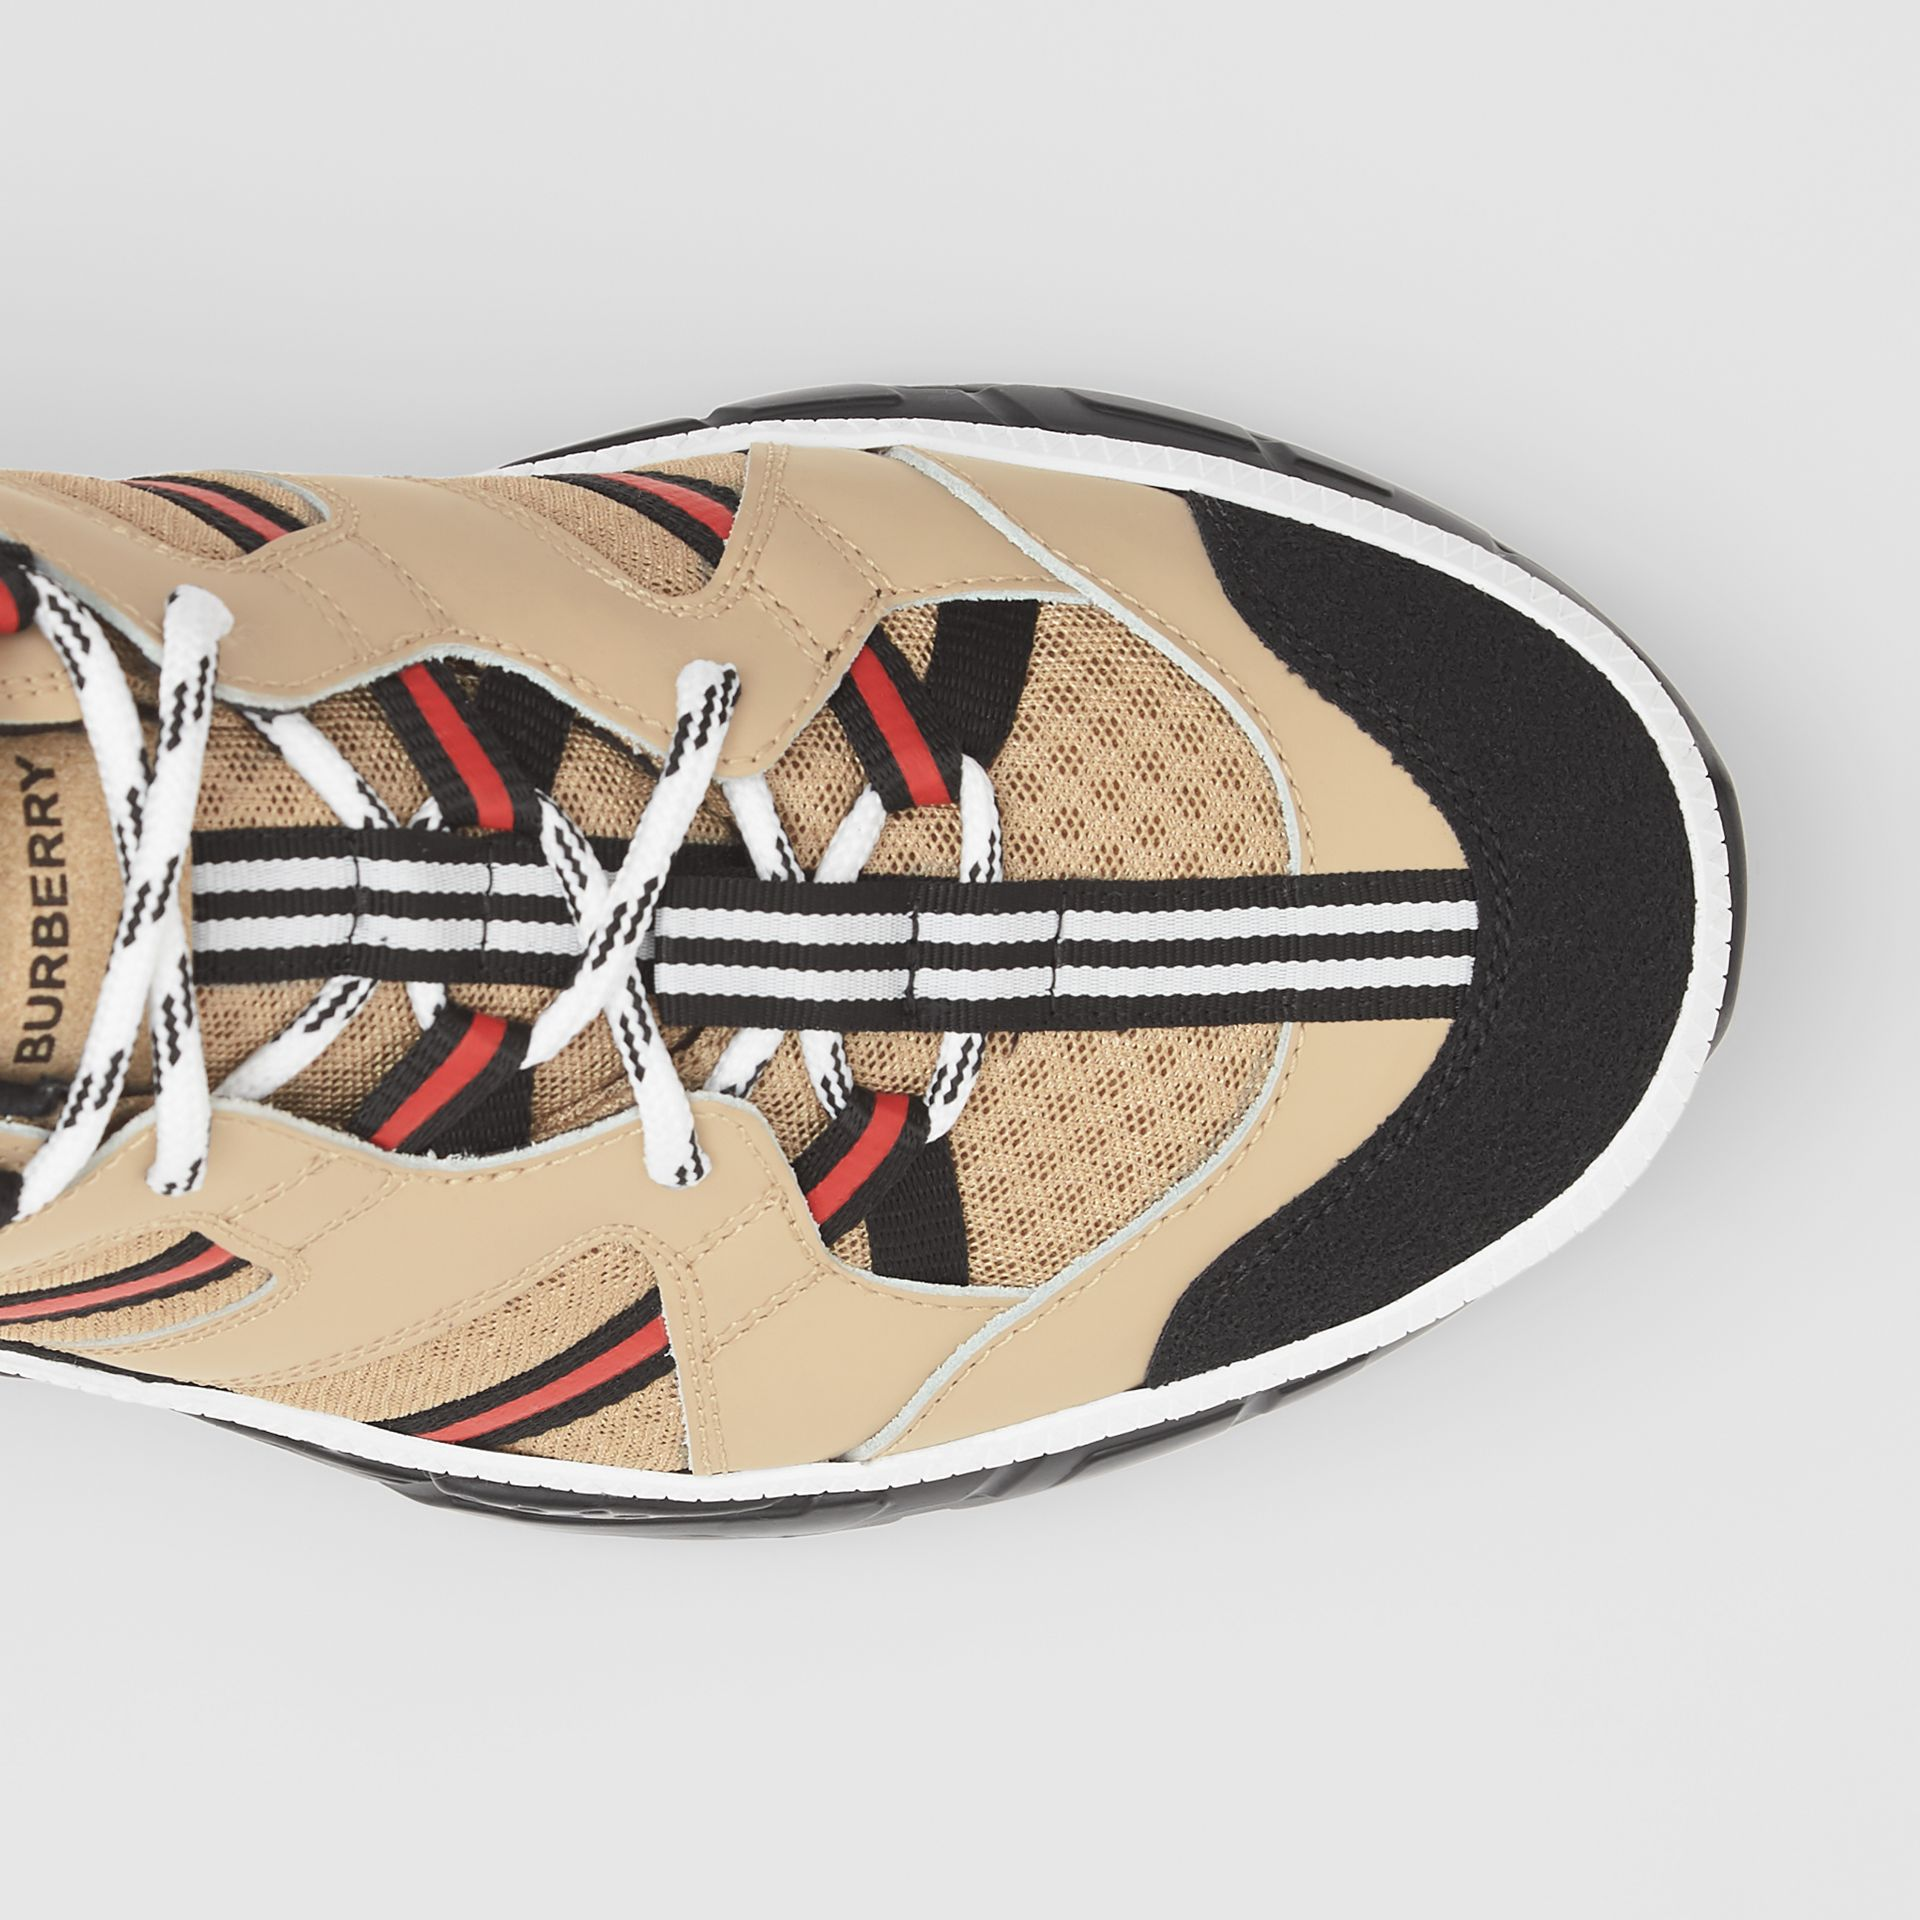 Mesh and Leather Union Sneakers in Beige - Men | Burberry - gallery image 6